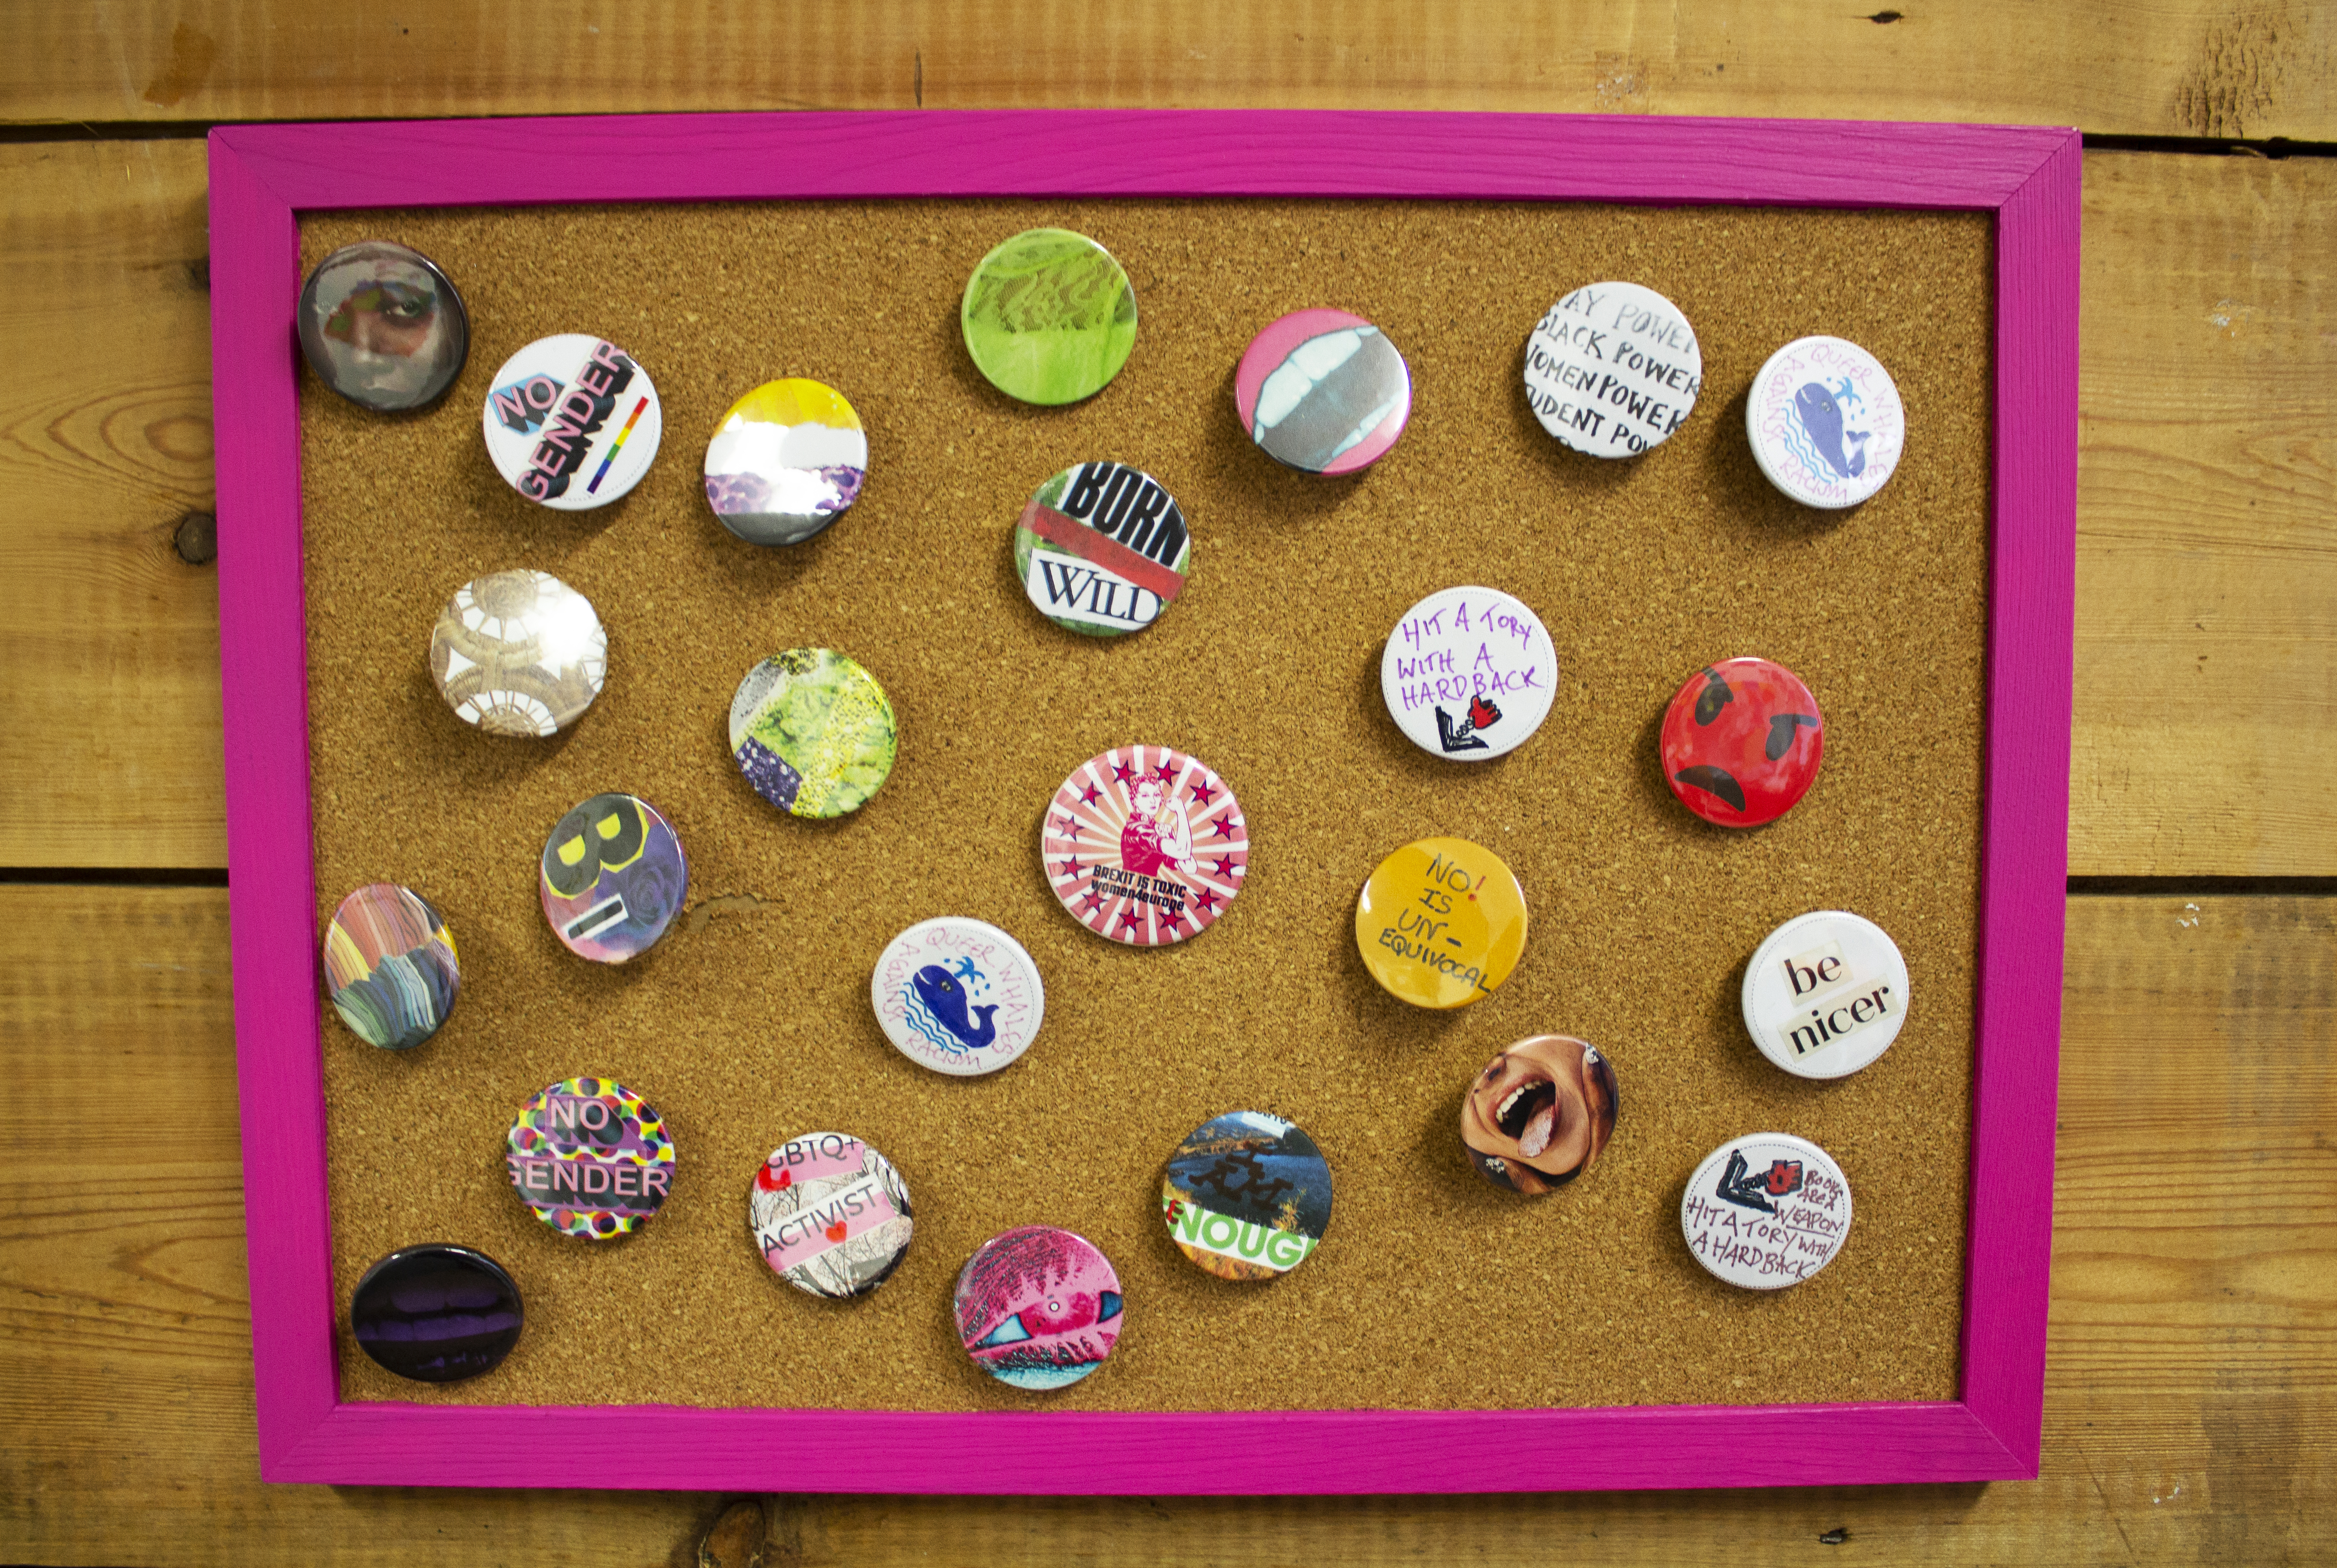 close up of badges displayed on exhibition wall, some badges say 'be nicer', 'bi', 'no gender'